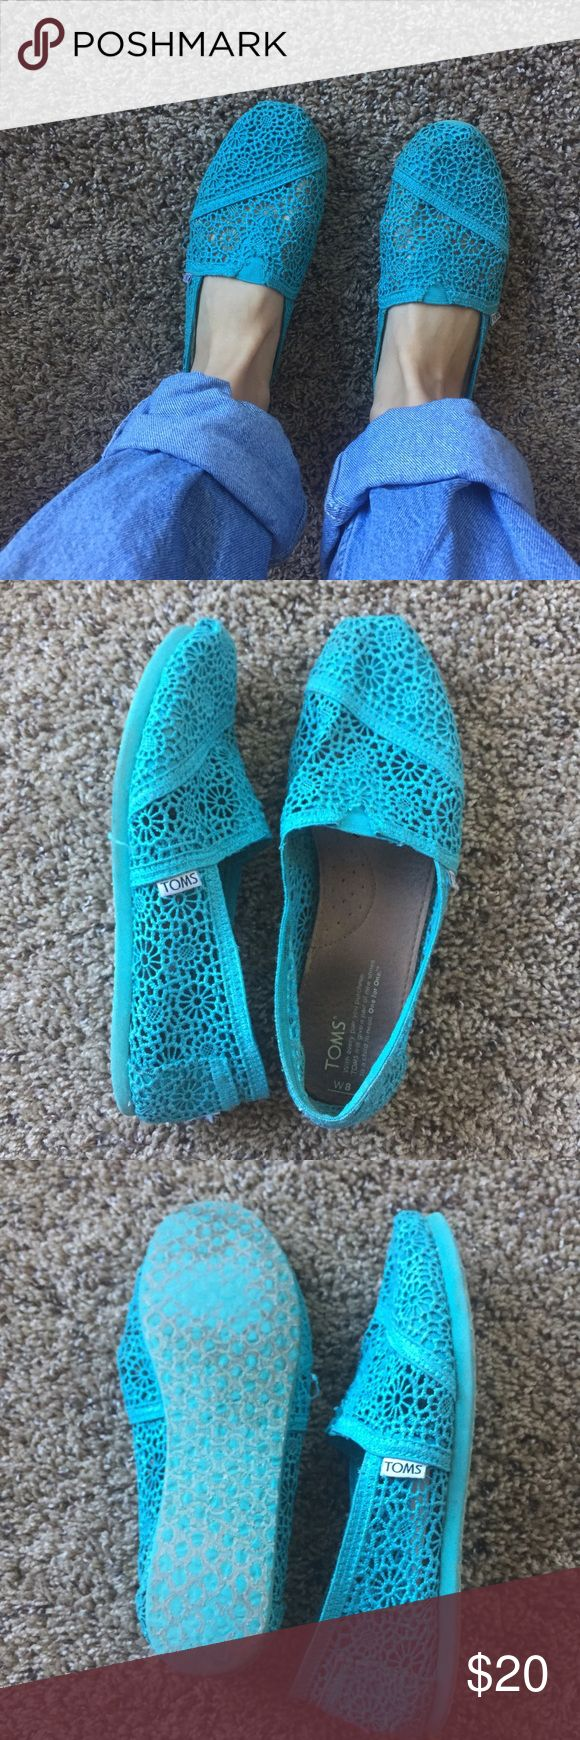 Teal crochet Toms! Teal crochet toms. Worn a bit but can't tell on the outside! Lining inside the crochet where your toes are. Size 8 TOMS Shoes Flats & Loafers